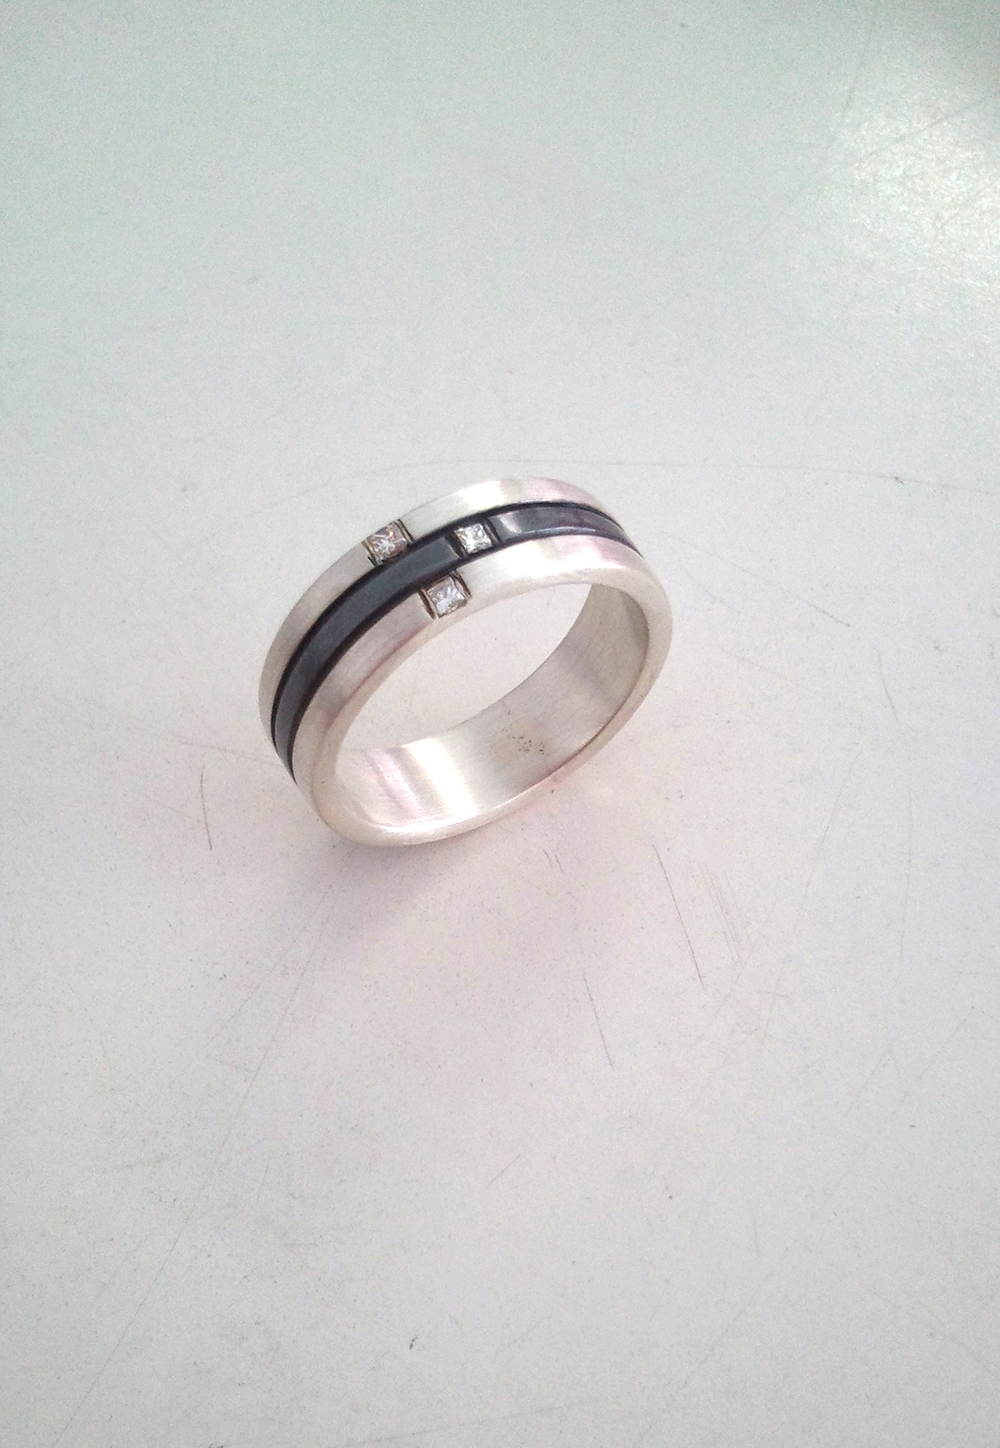 Silver and Oxidised Silver Ring with Illusion set Princess Cut Diamonds.jpg